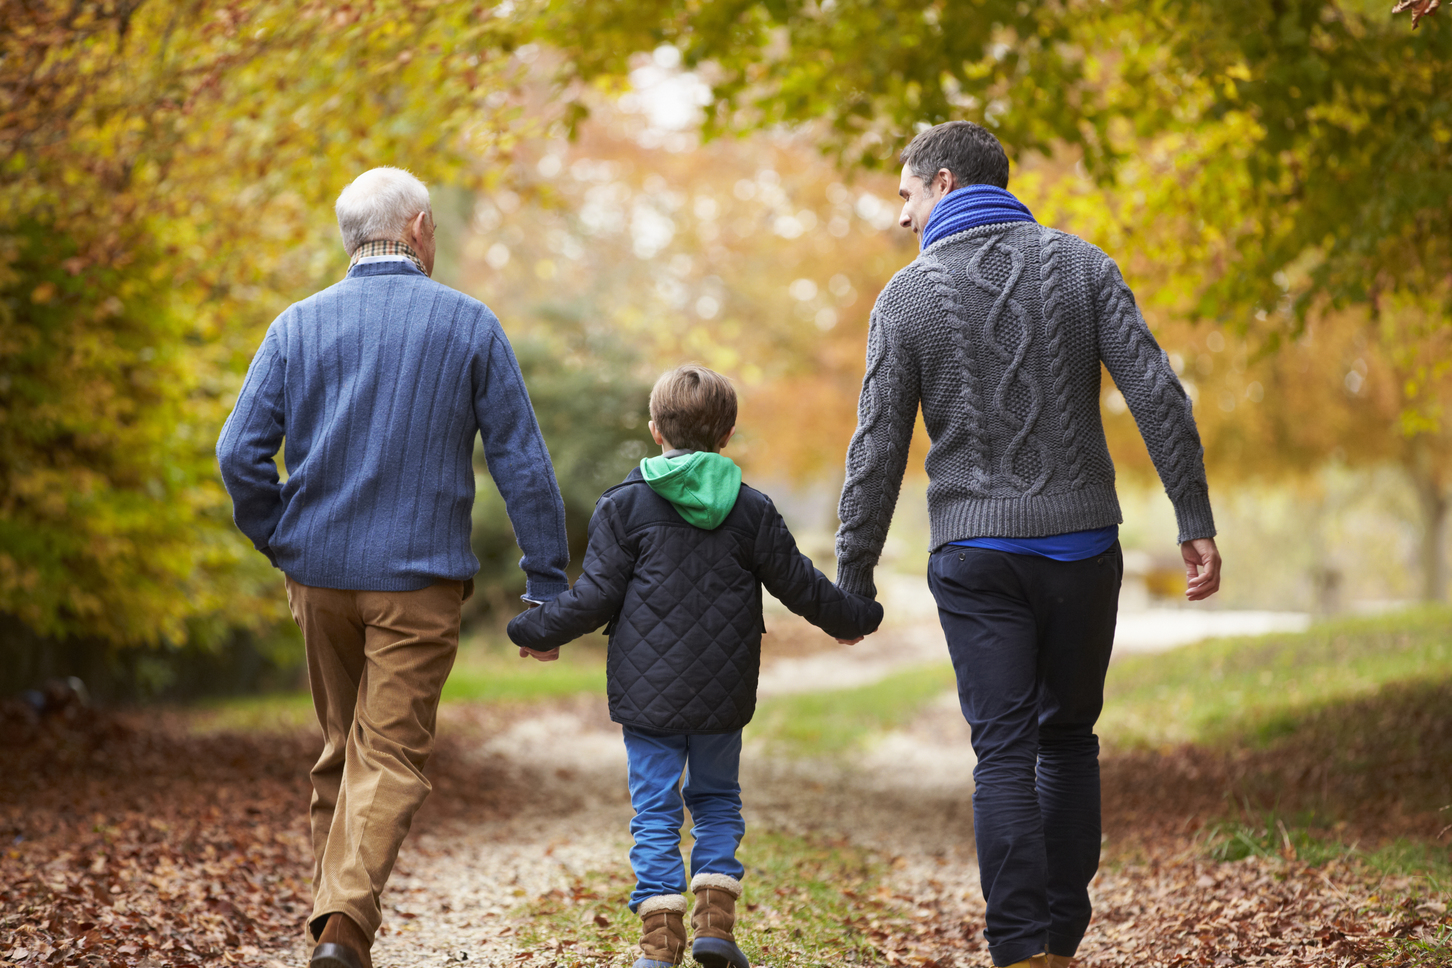 Multigenerational family walking on a path